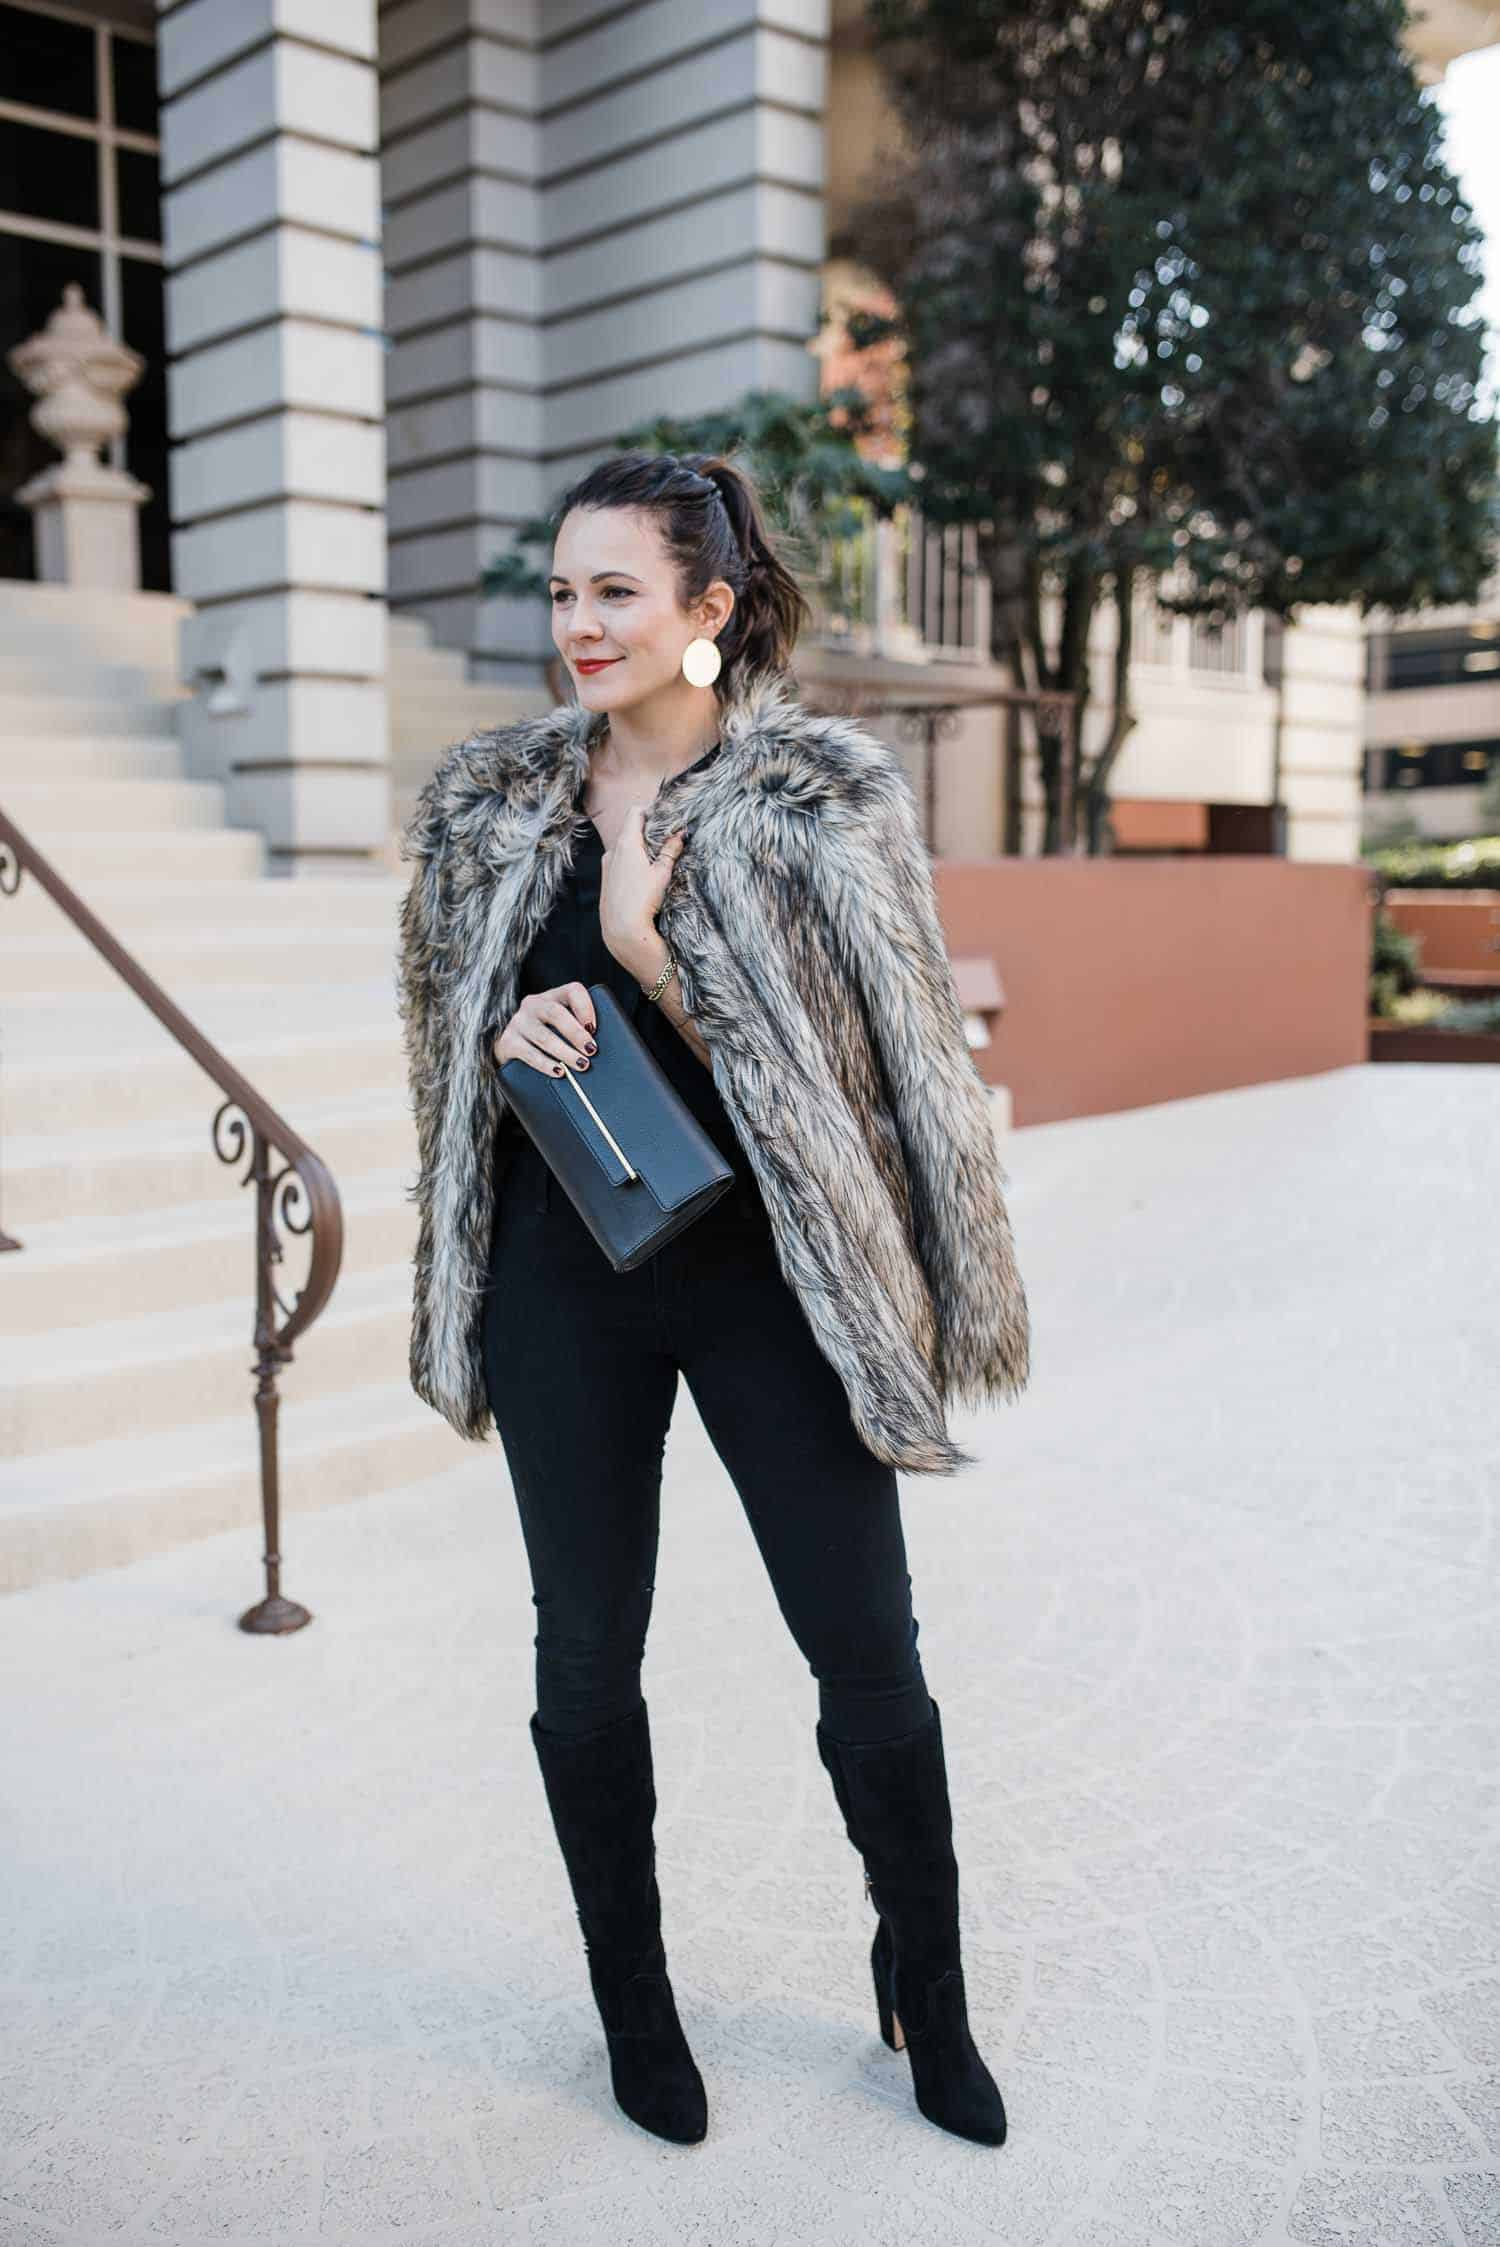 Vince Camuto Faux Fur Coat • Vince Camuto Aster Hardware Bar Clutch • Vince Camuto Coranna Boot